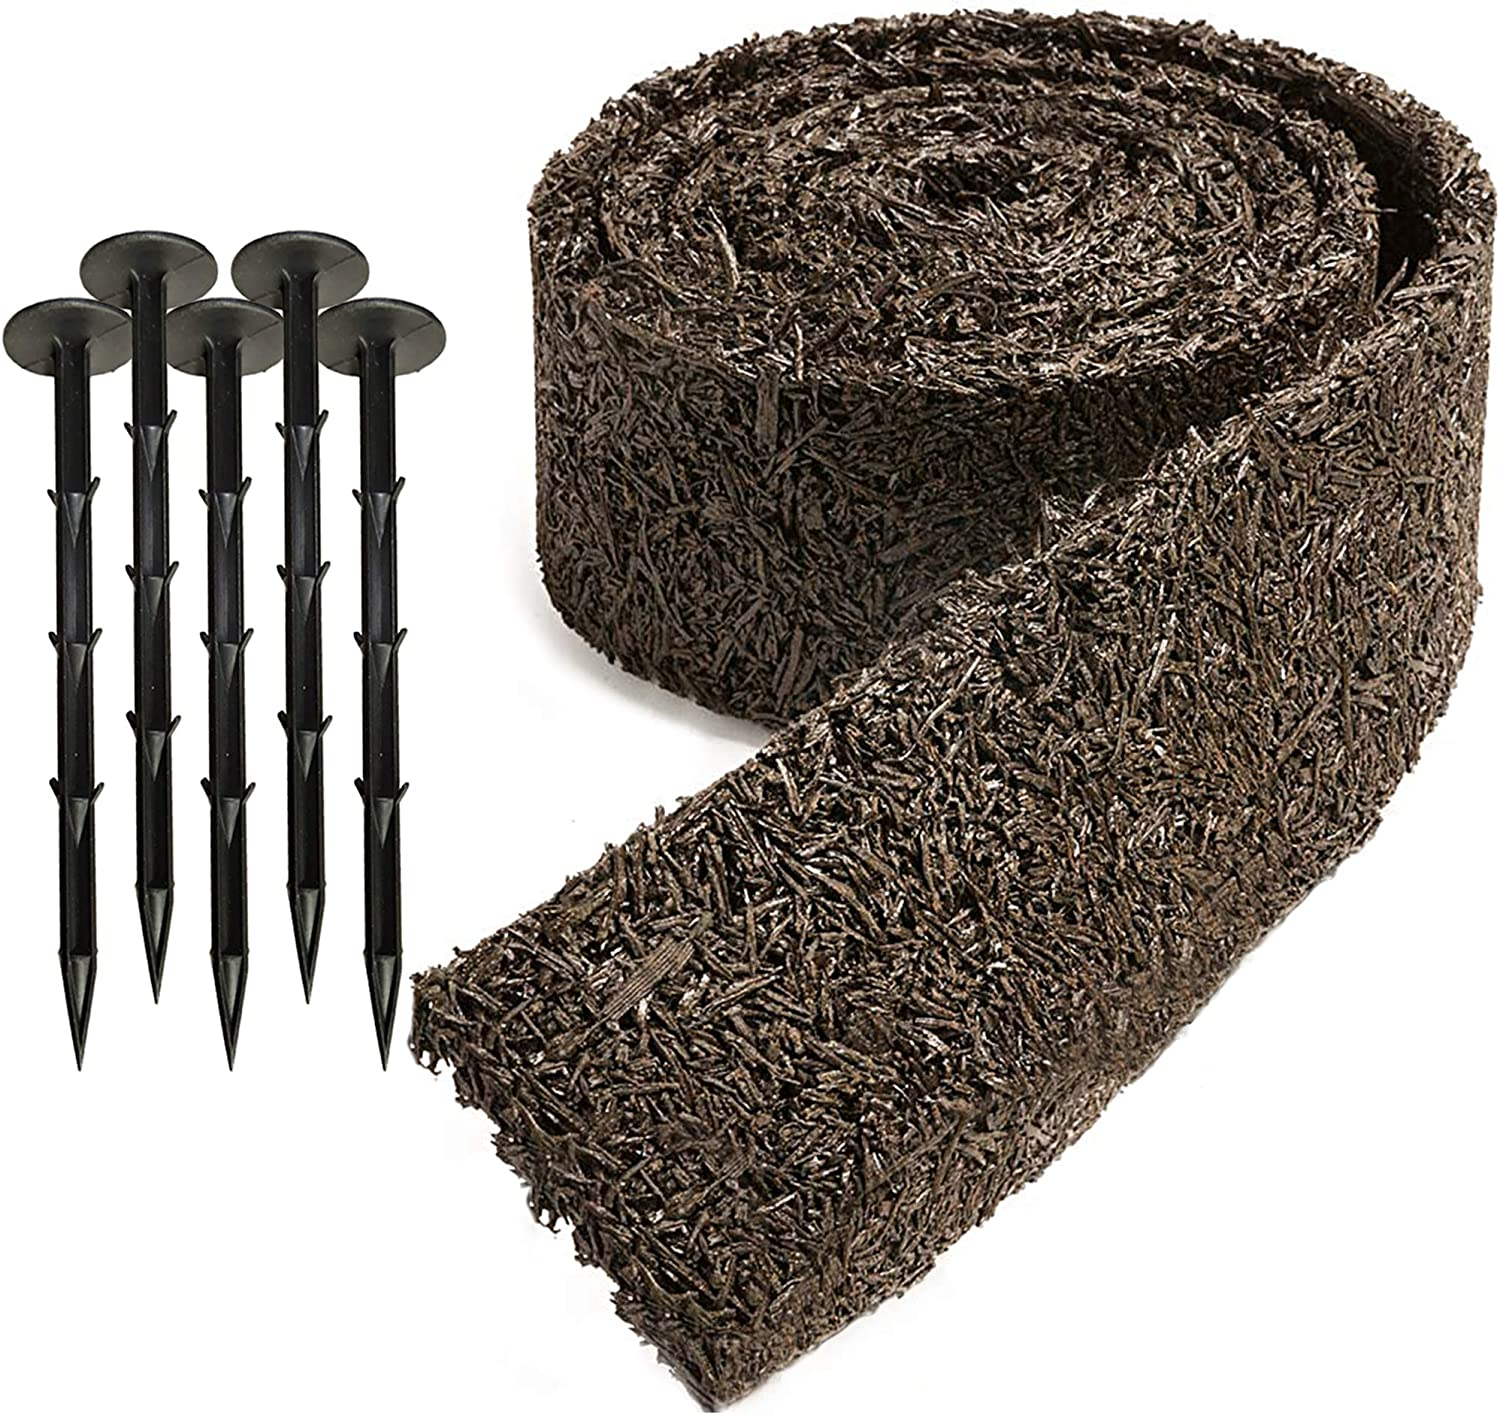 """Black Rubber Mulch Border for Landscaping, 120"""" x 4.5"""" Roll, Natural-Looking Permanent Garden Barrier for Plants, Vegetables, and Flowers, Recycled and Sustainable, 15 Plastic Anchors Included"""